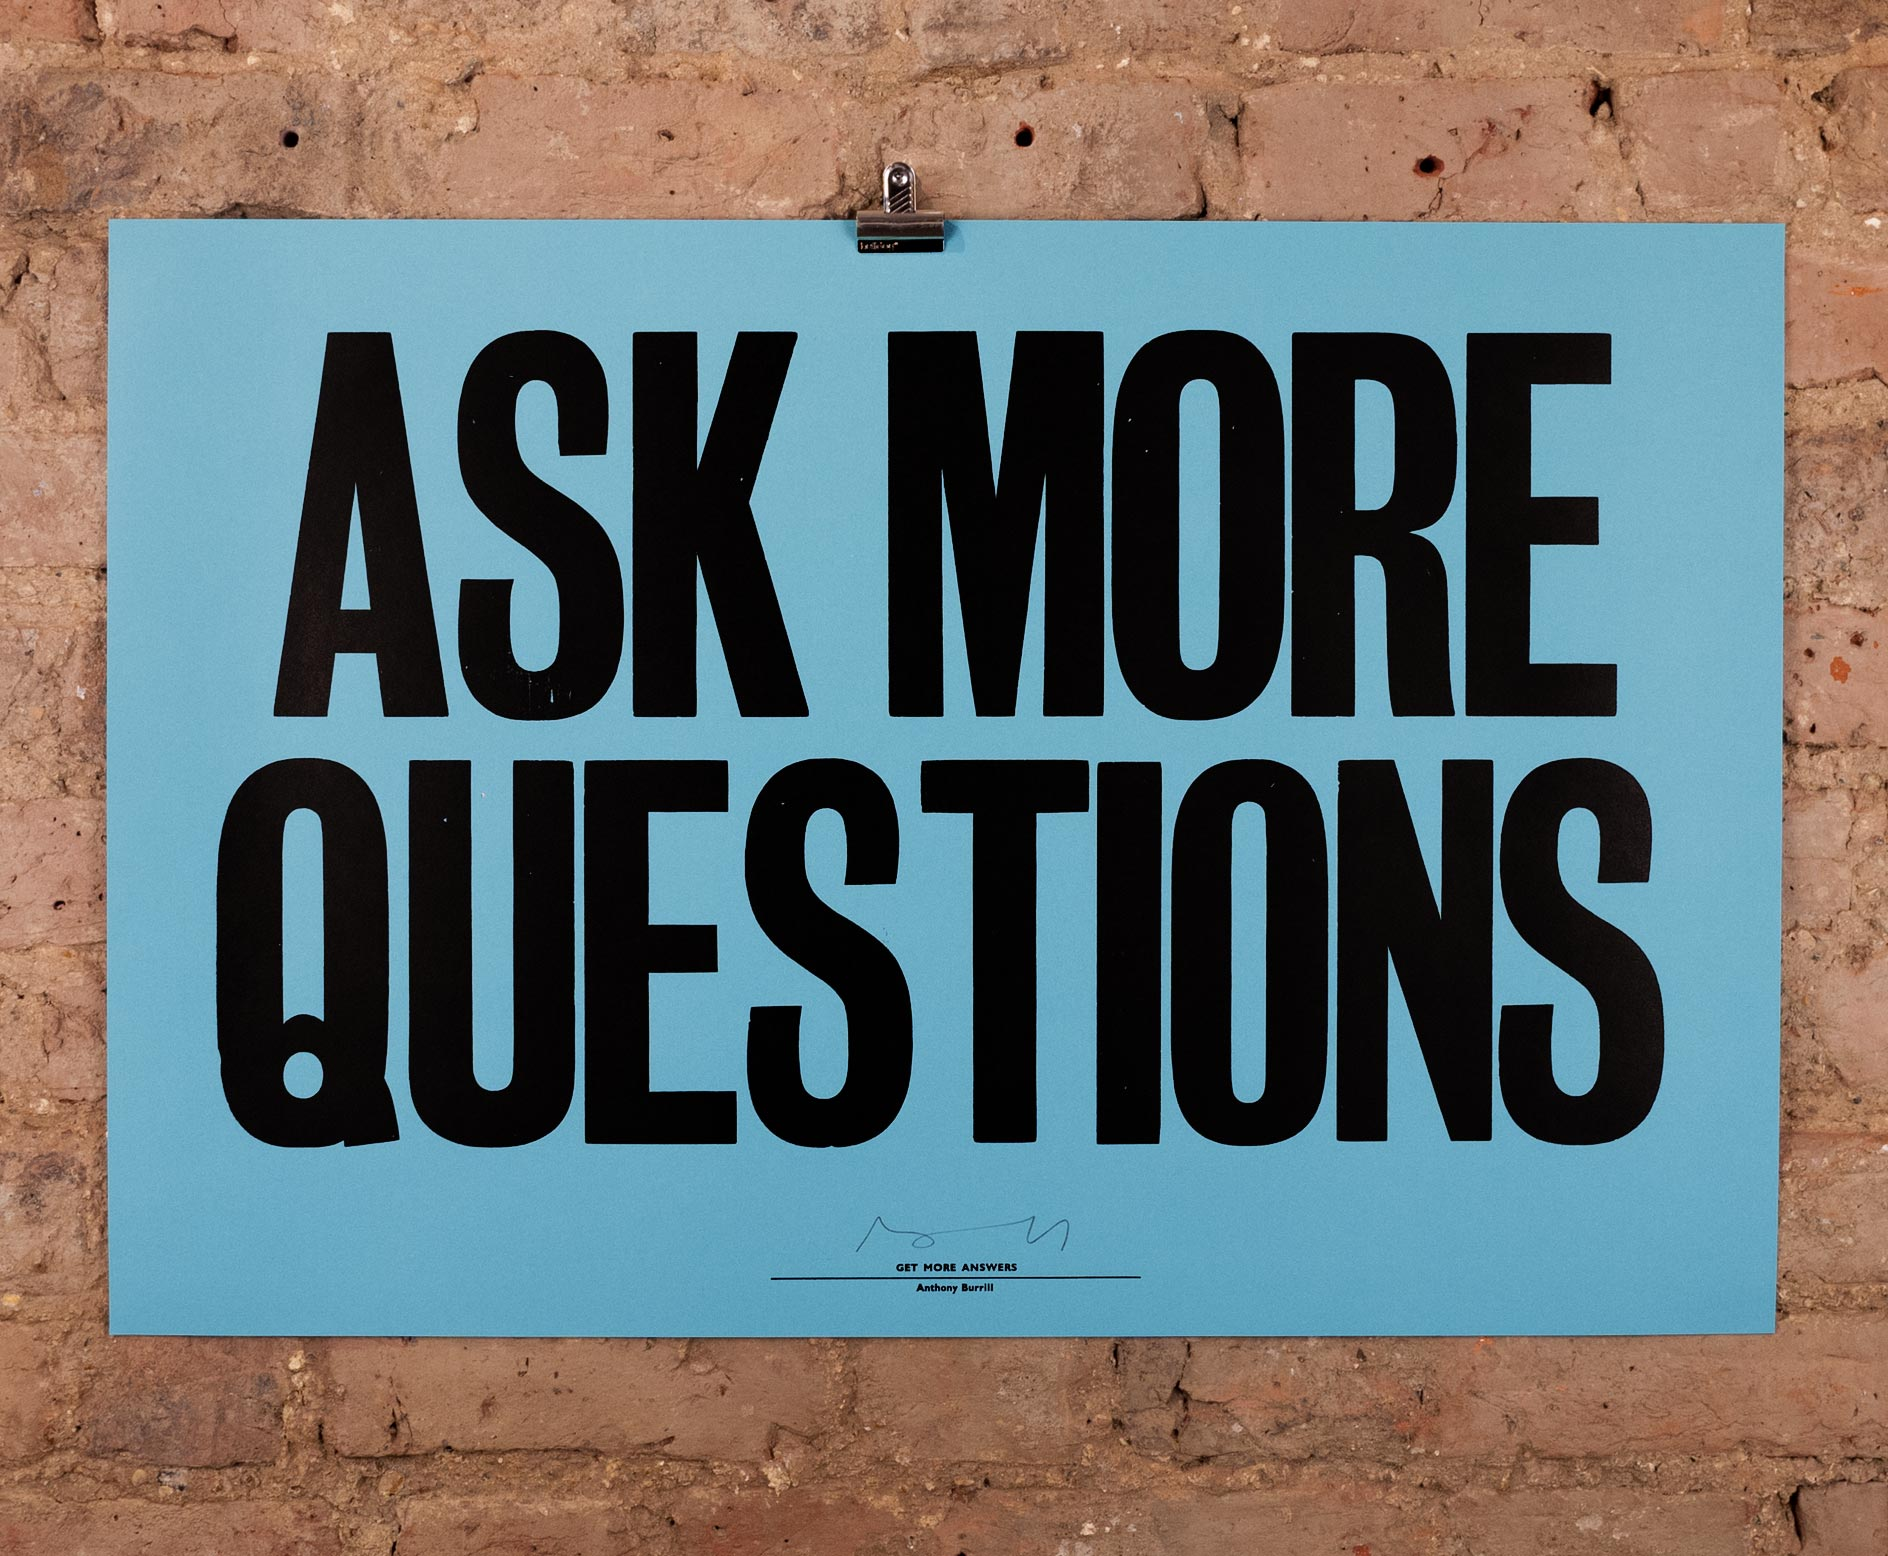 AB19-Anthony-Burrill-Ask-More-Questions-Full-Wall-Image